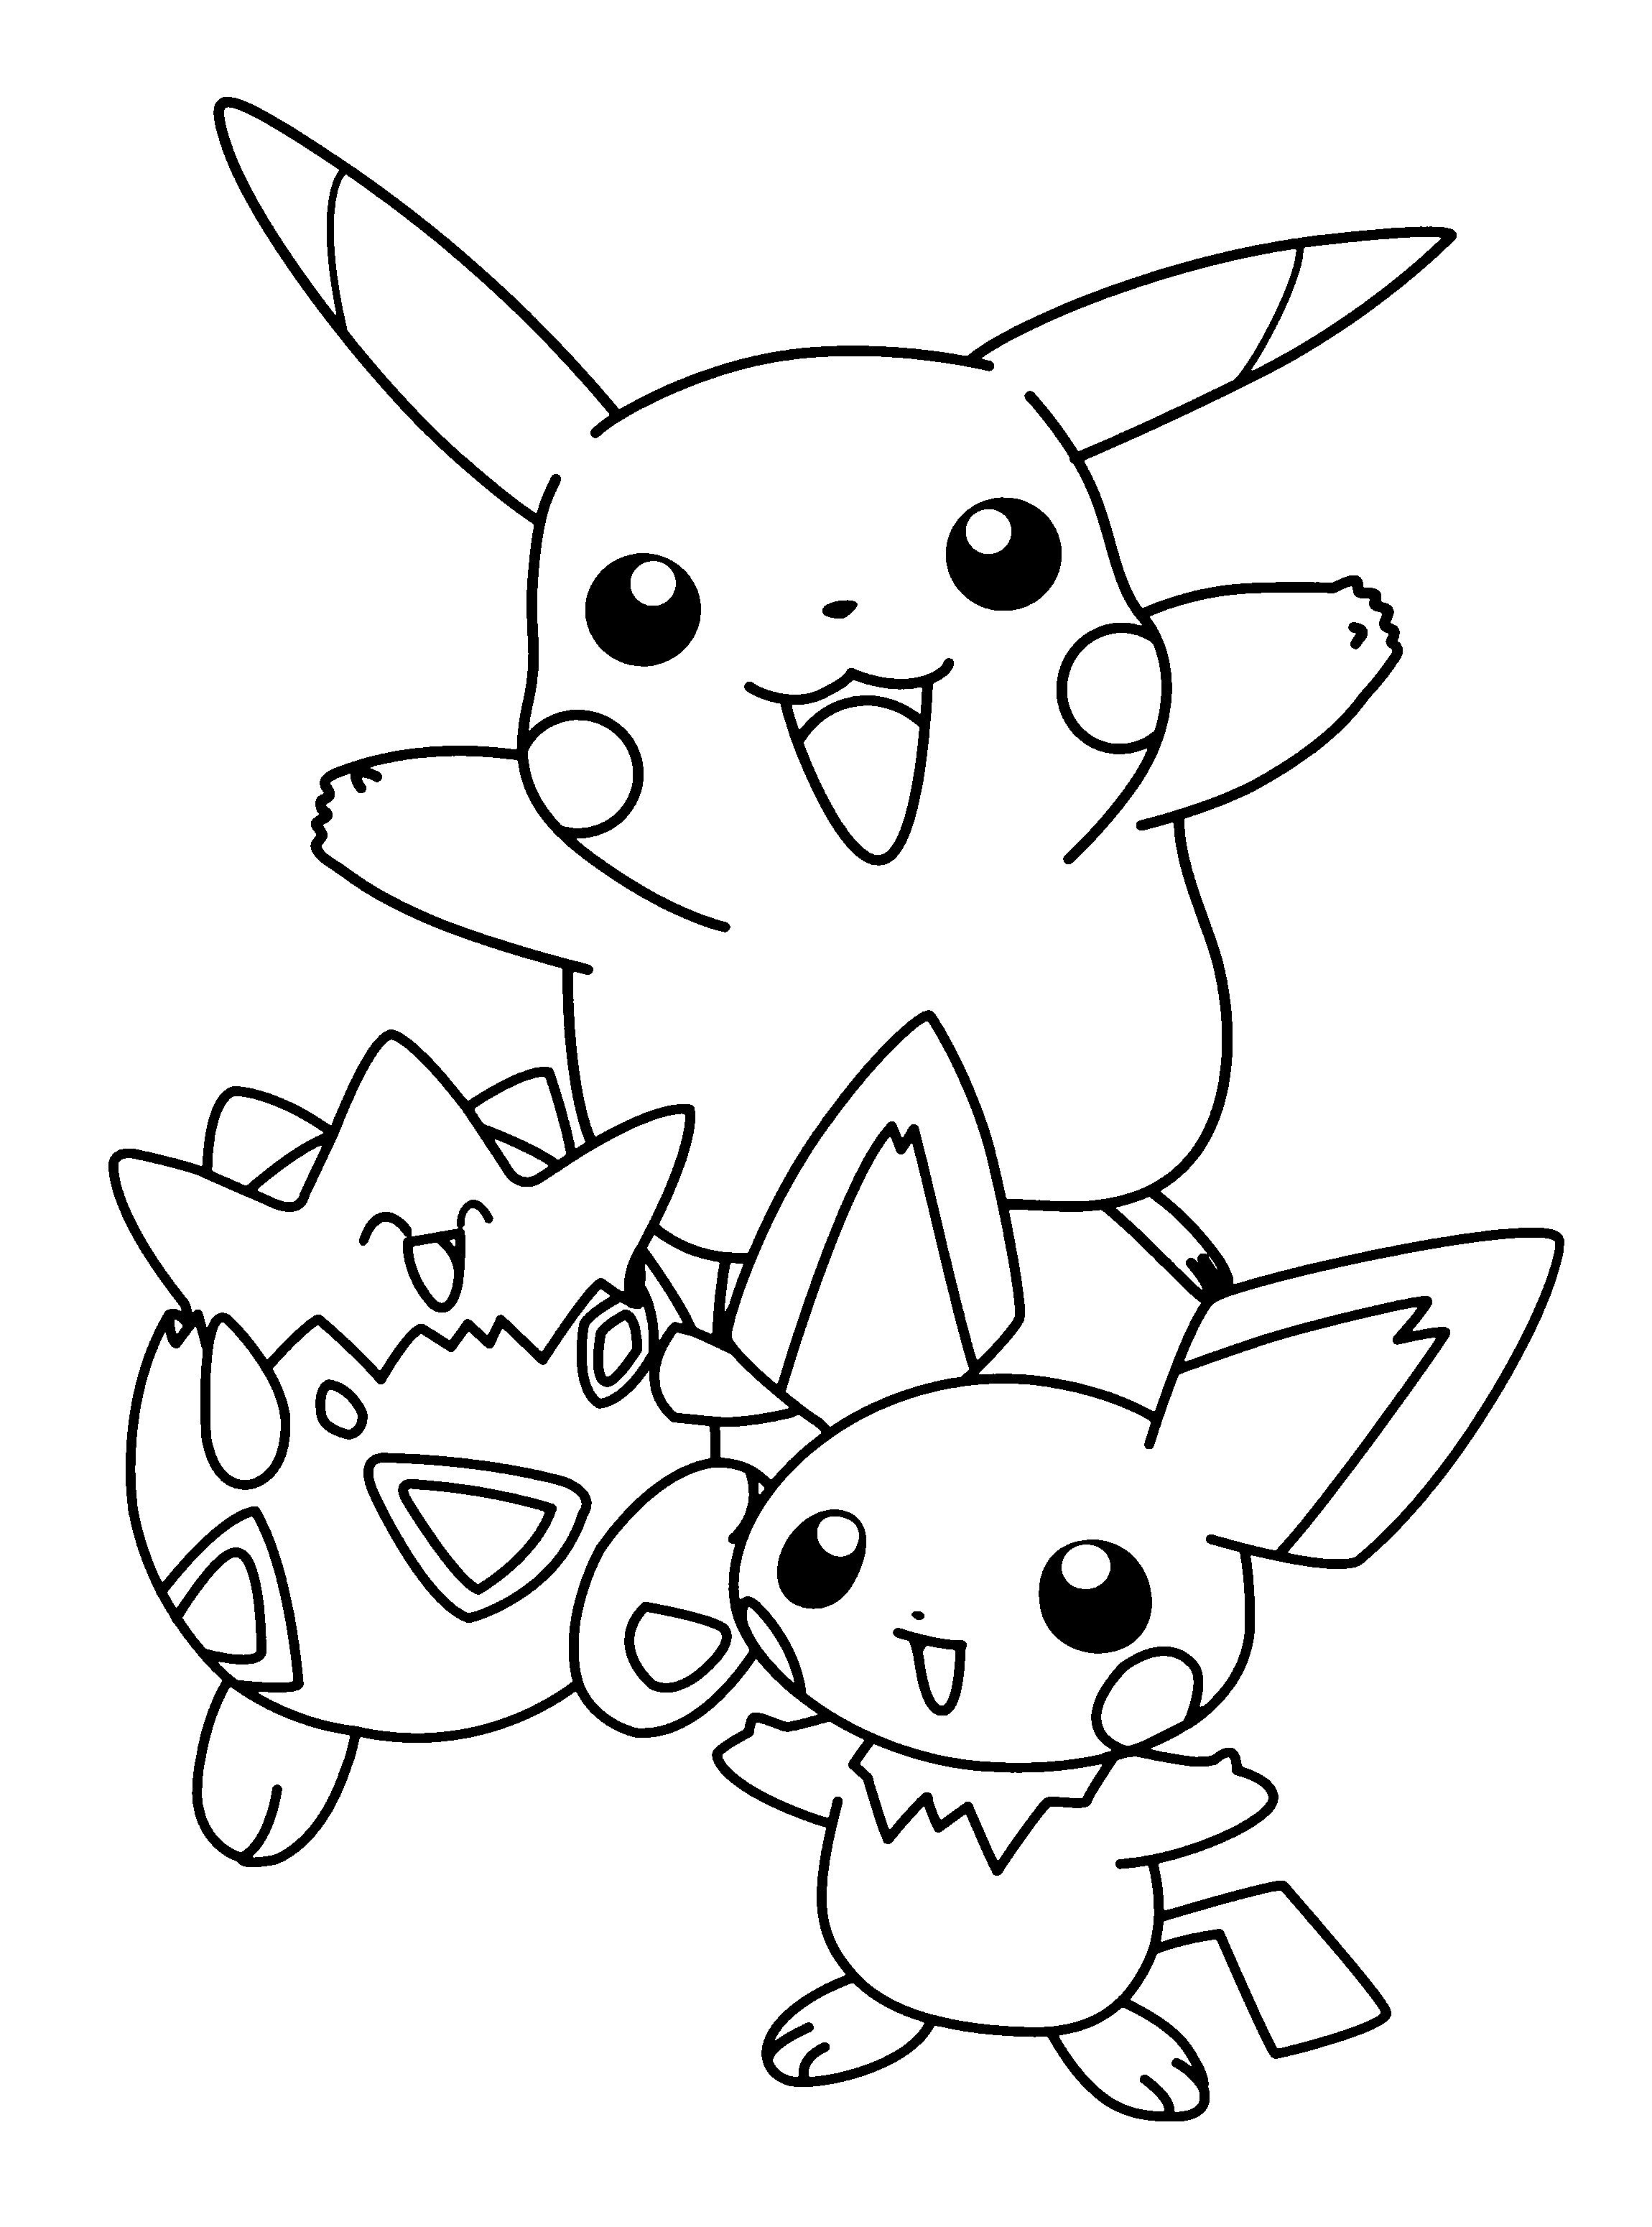 Lego Pikachu Coloring Pages With Images Pikachu Coloring Page